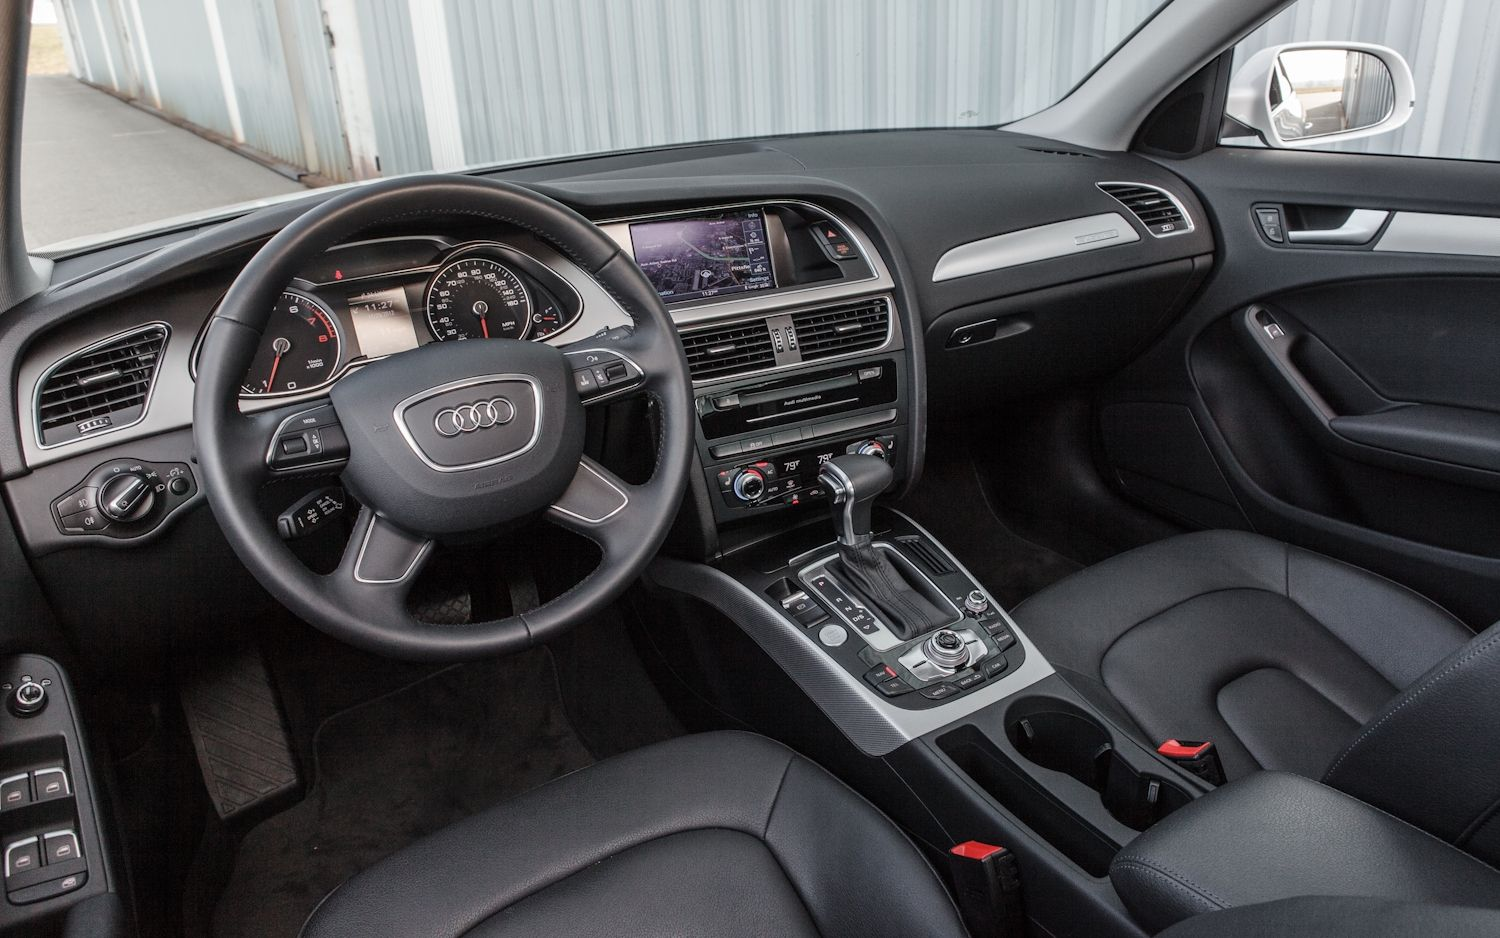 2013 Audi A4 2.0T Front Interior Nice